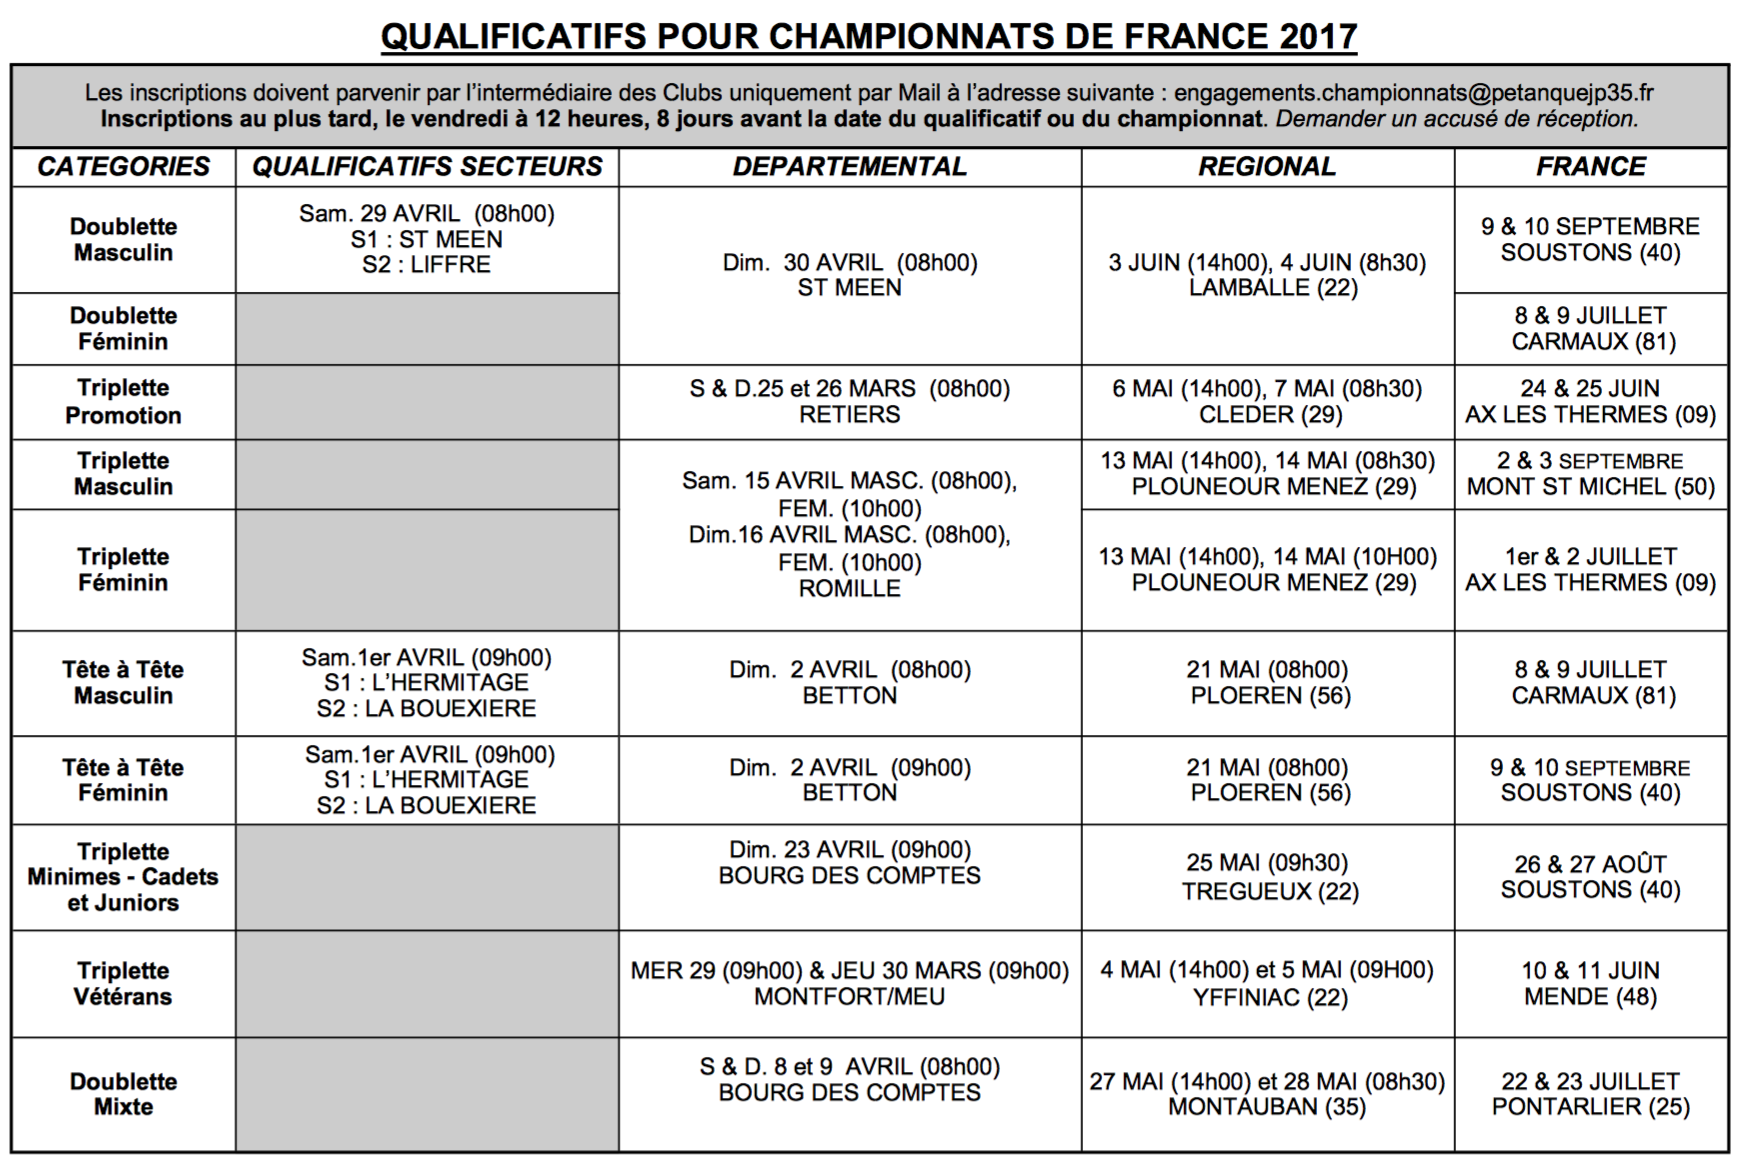 Qualificatifs championnats de france 2017